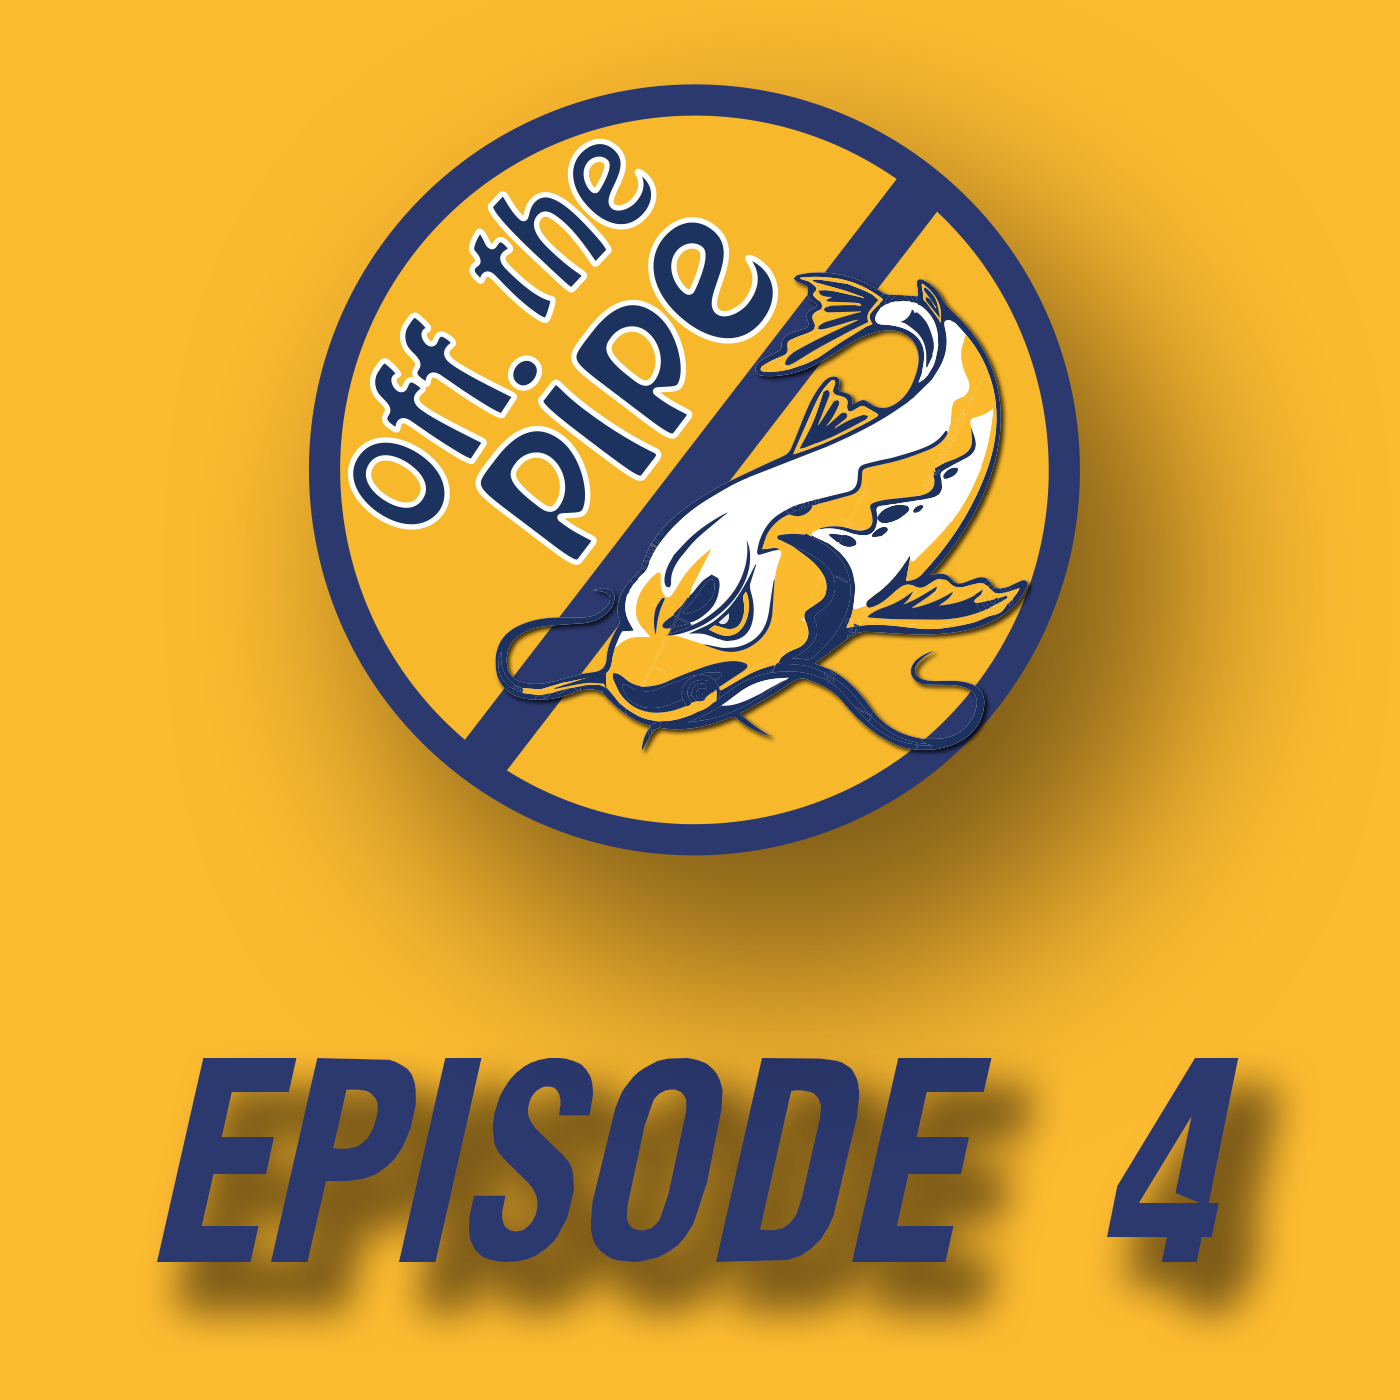 Off the Podcast Episode 4: Round 2! Bring it Jets!